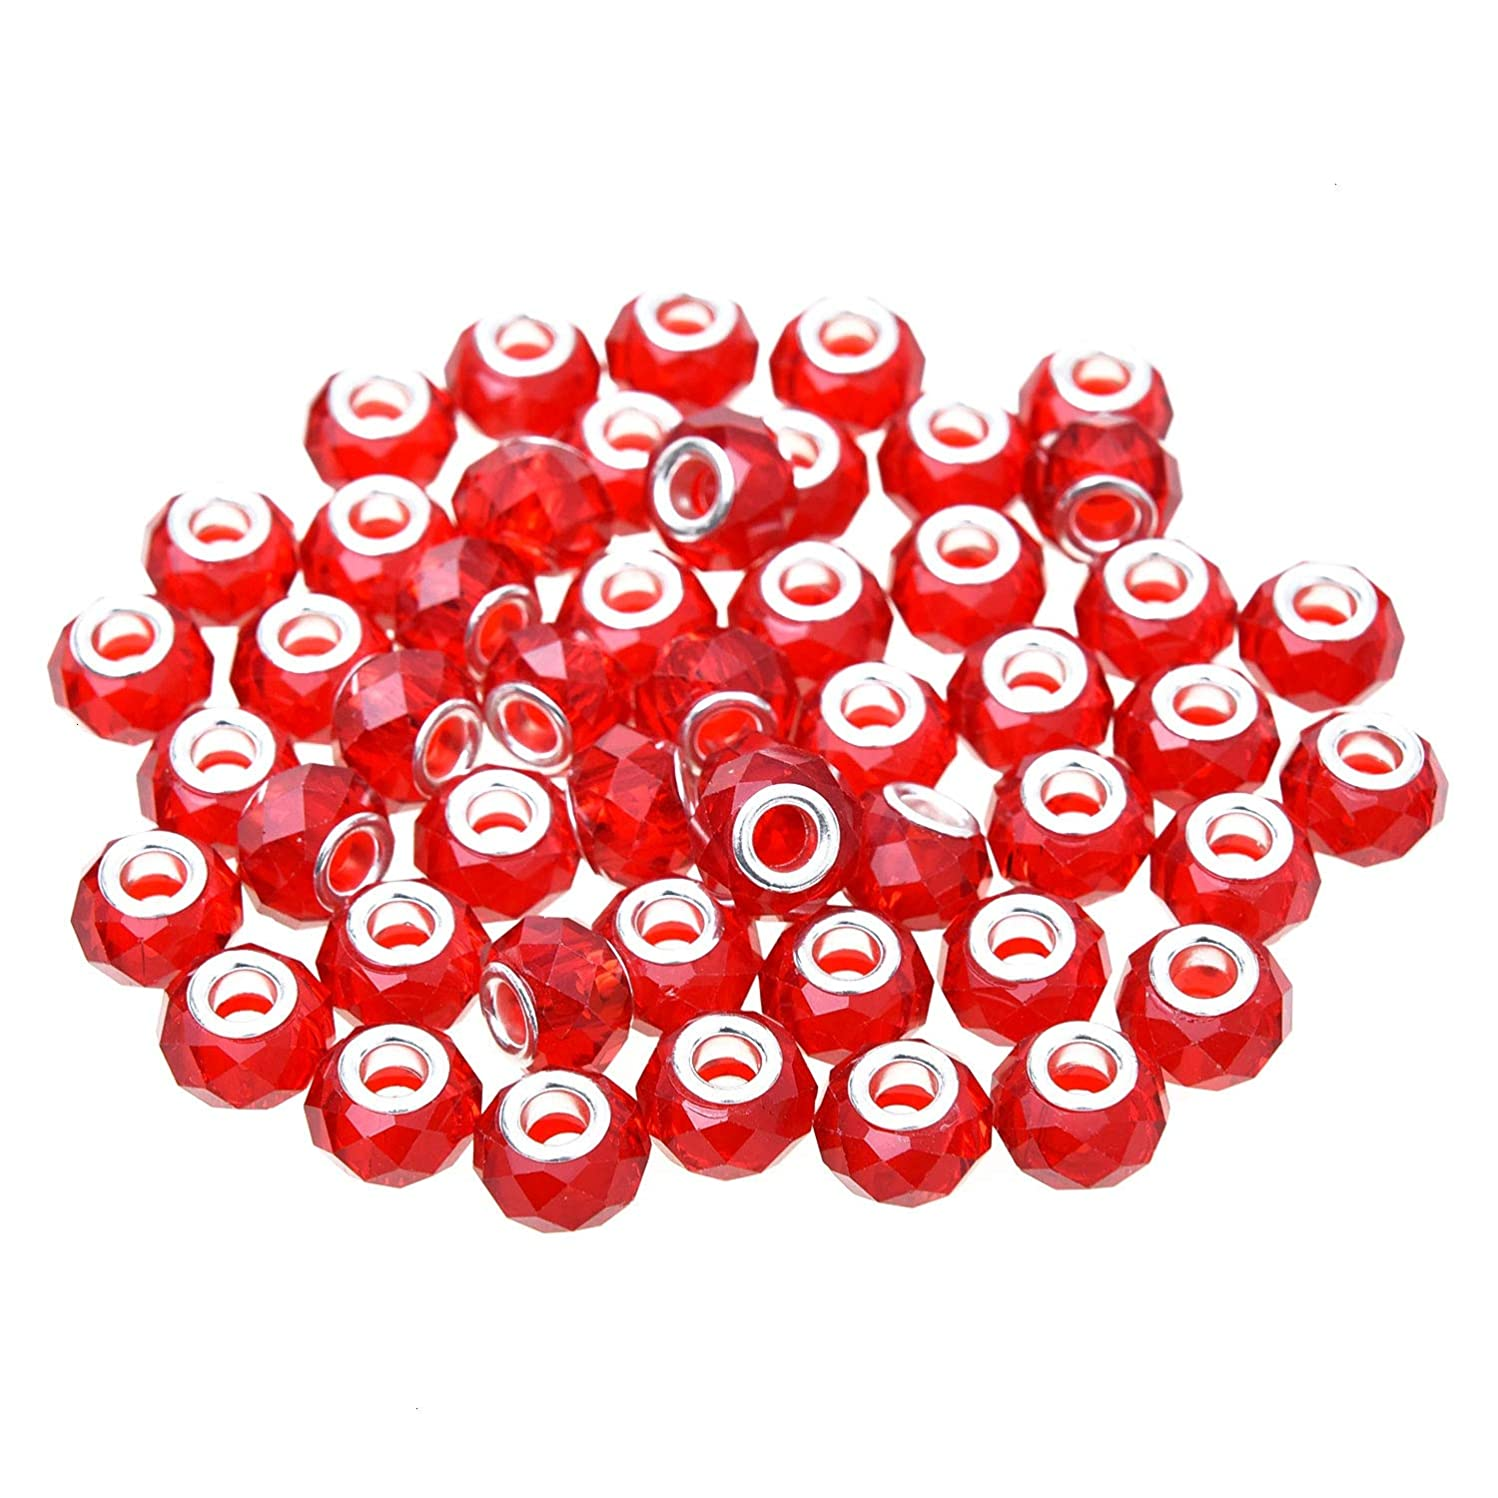 Monrocco Red Crystal Glass Charms, 50Pcs Handmade Faceted Rondelle Large Hole Murano Glass European Beads